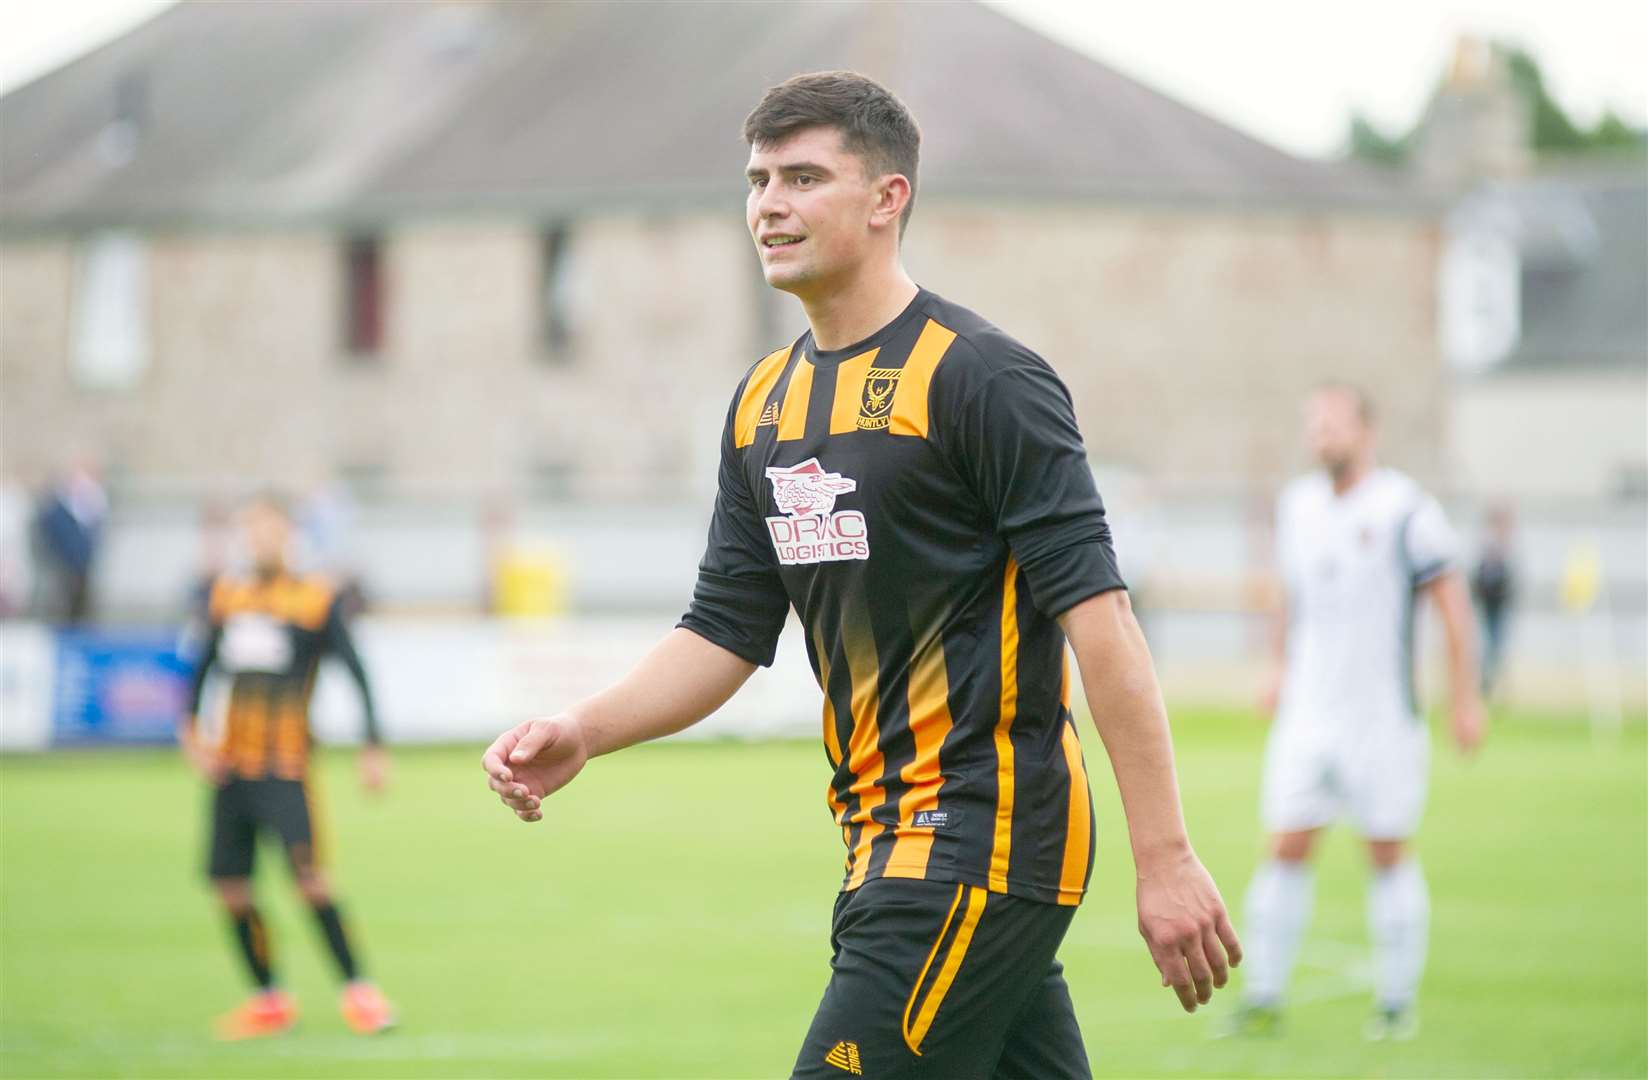 Glenn Murison levelled for Huntly in their 3-1 Scottish Cup win over Cumbernauld Colts.